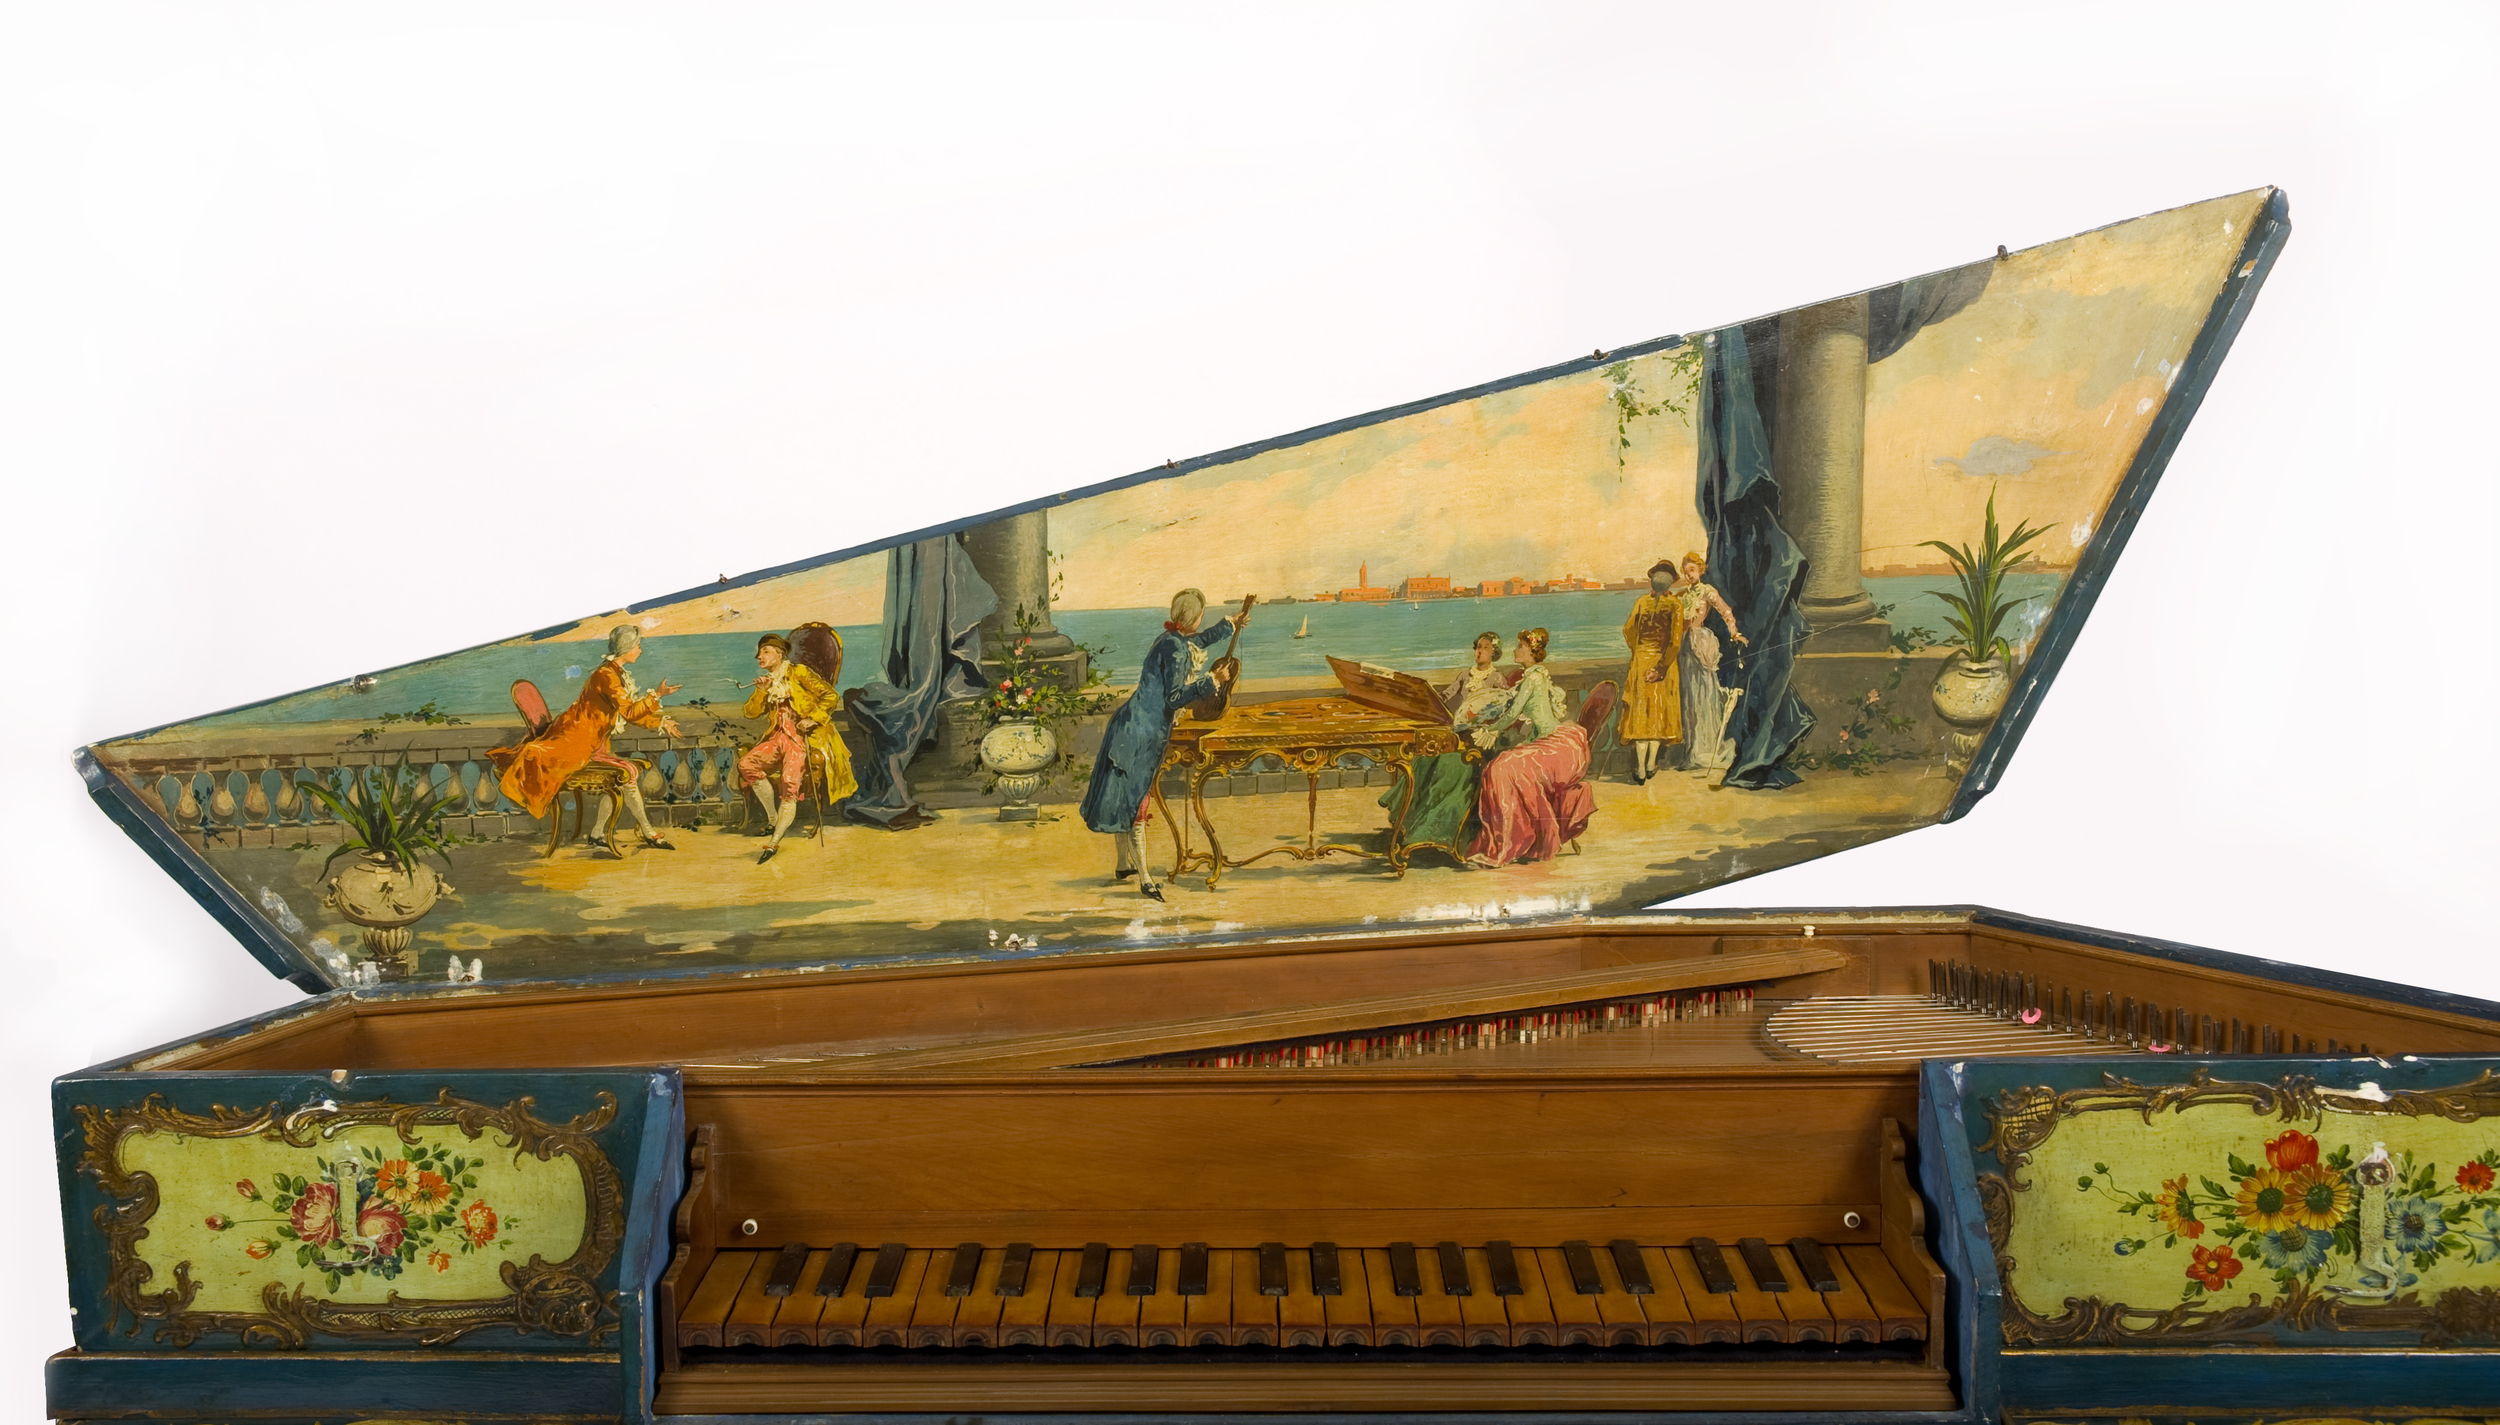 The National Music Centre's oldest keyboard instrument a Virginal from 1560 - it predates the piano.  photo courtesy of the National Music Centre.